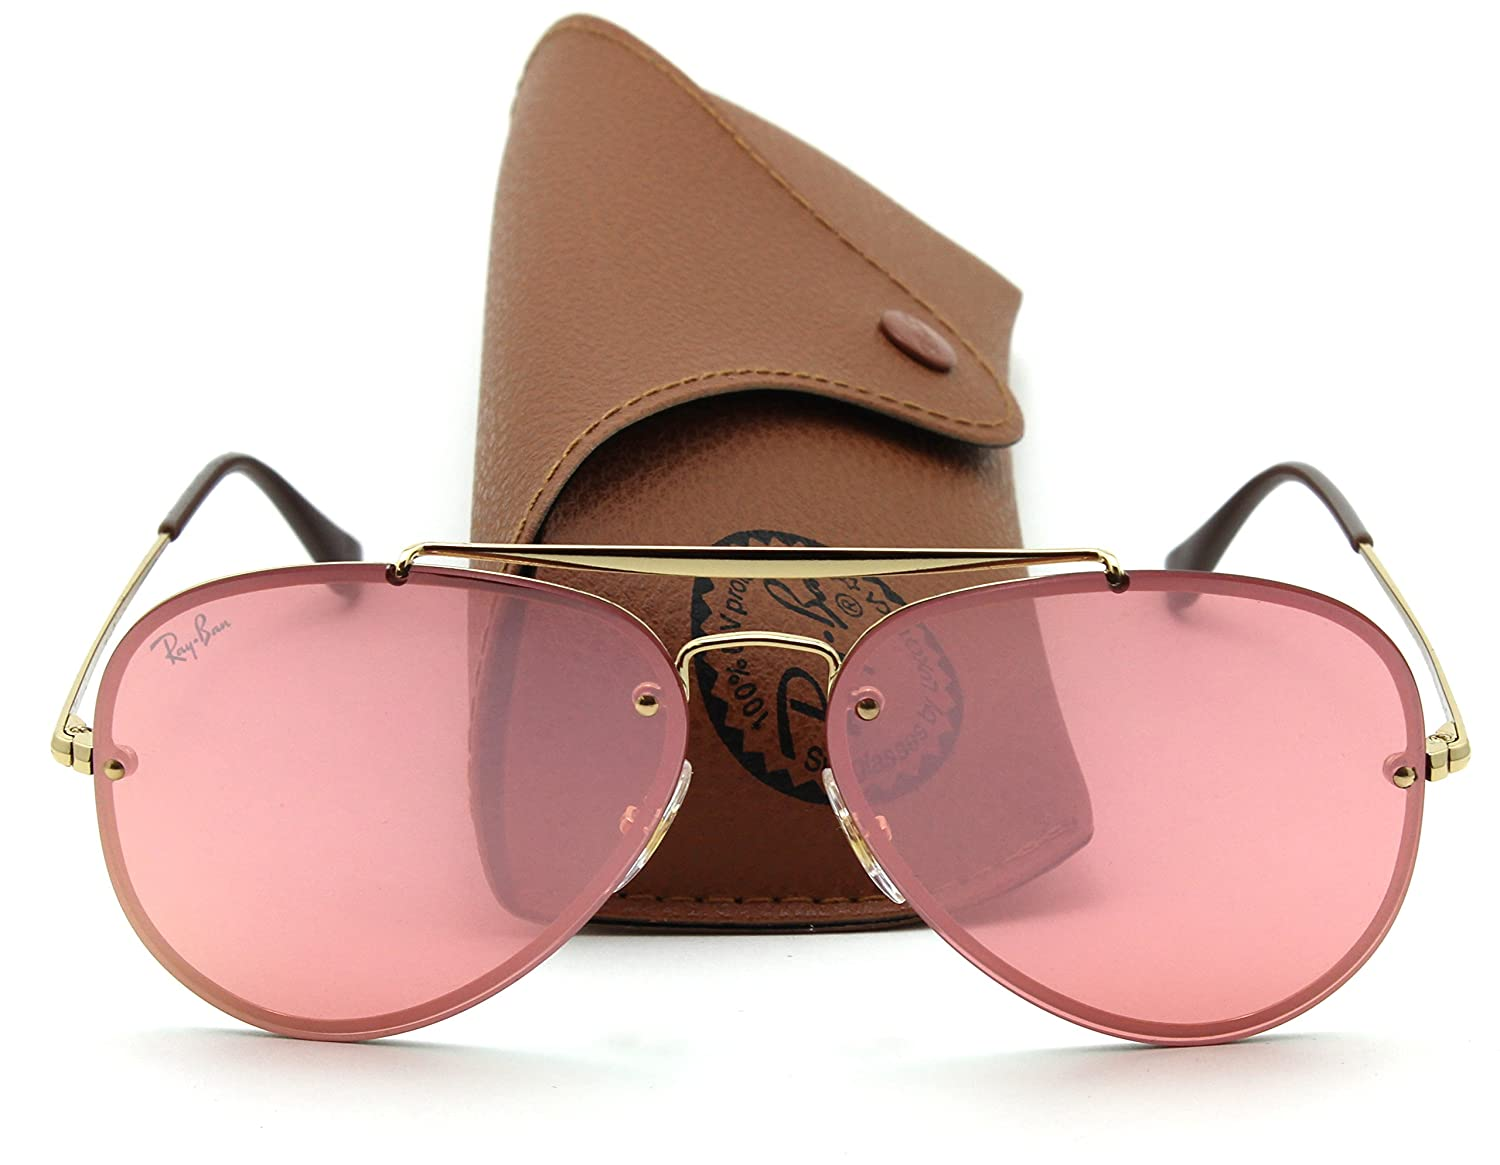 75641f969 Amazon.com: Ray-Ban RB3584N BLAZE AVIATOR Pink Mirror Sunglasses 9052E4,  61mm: Clothing